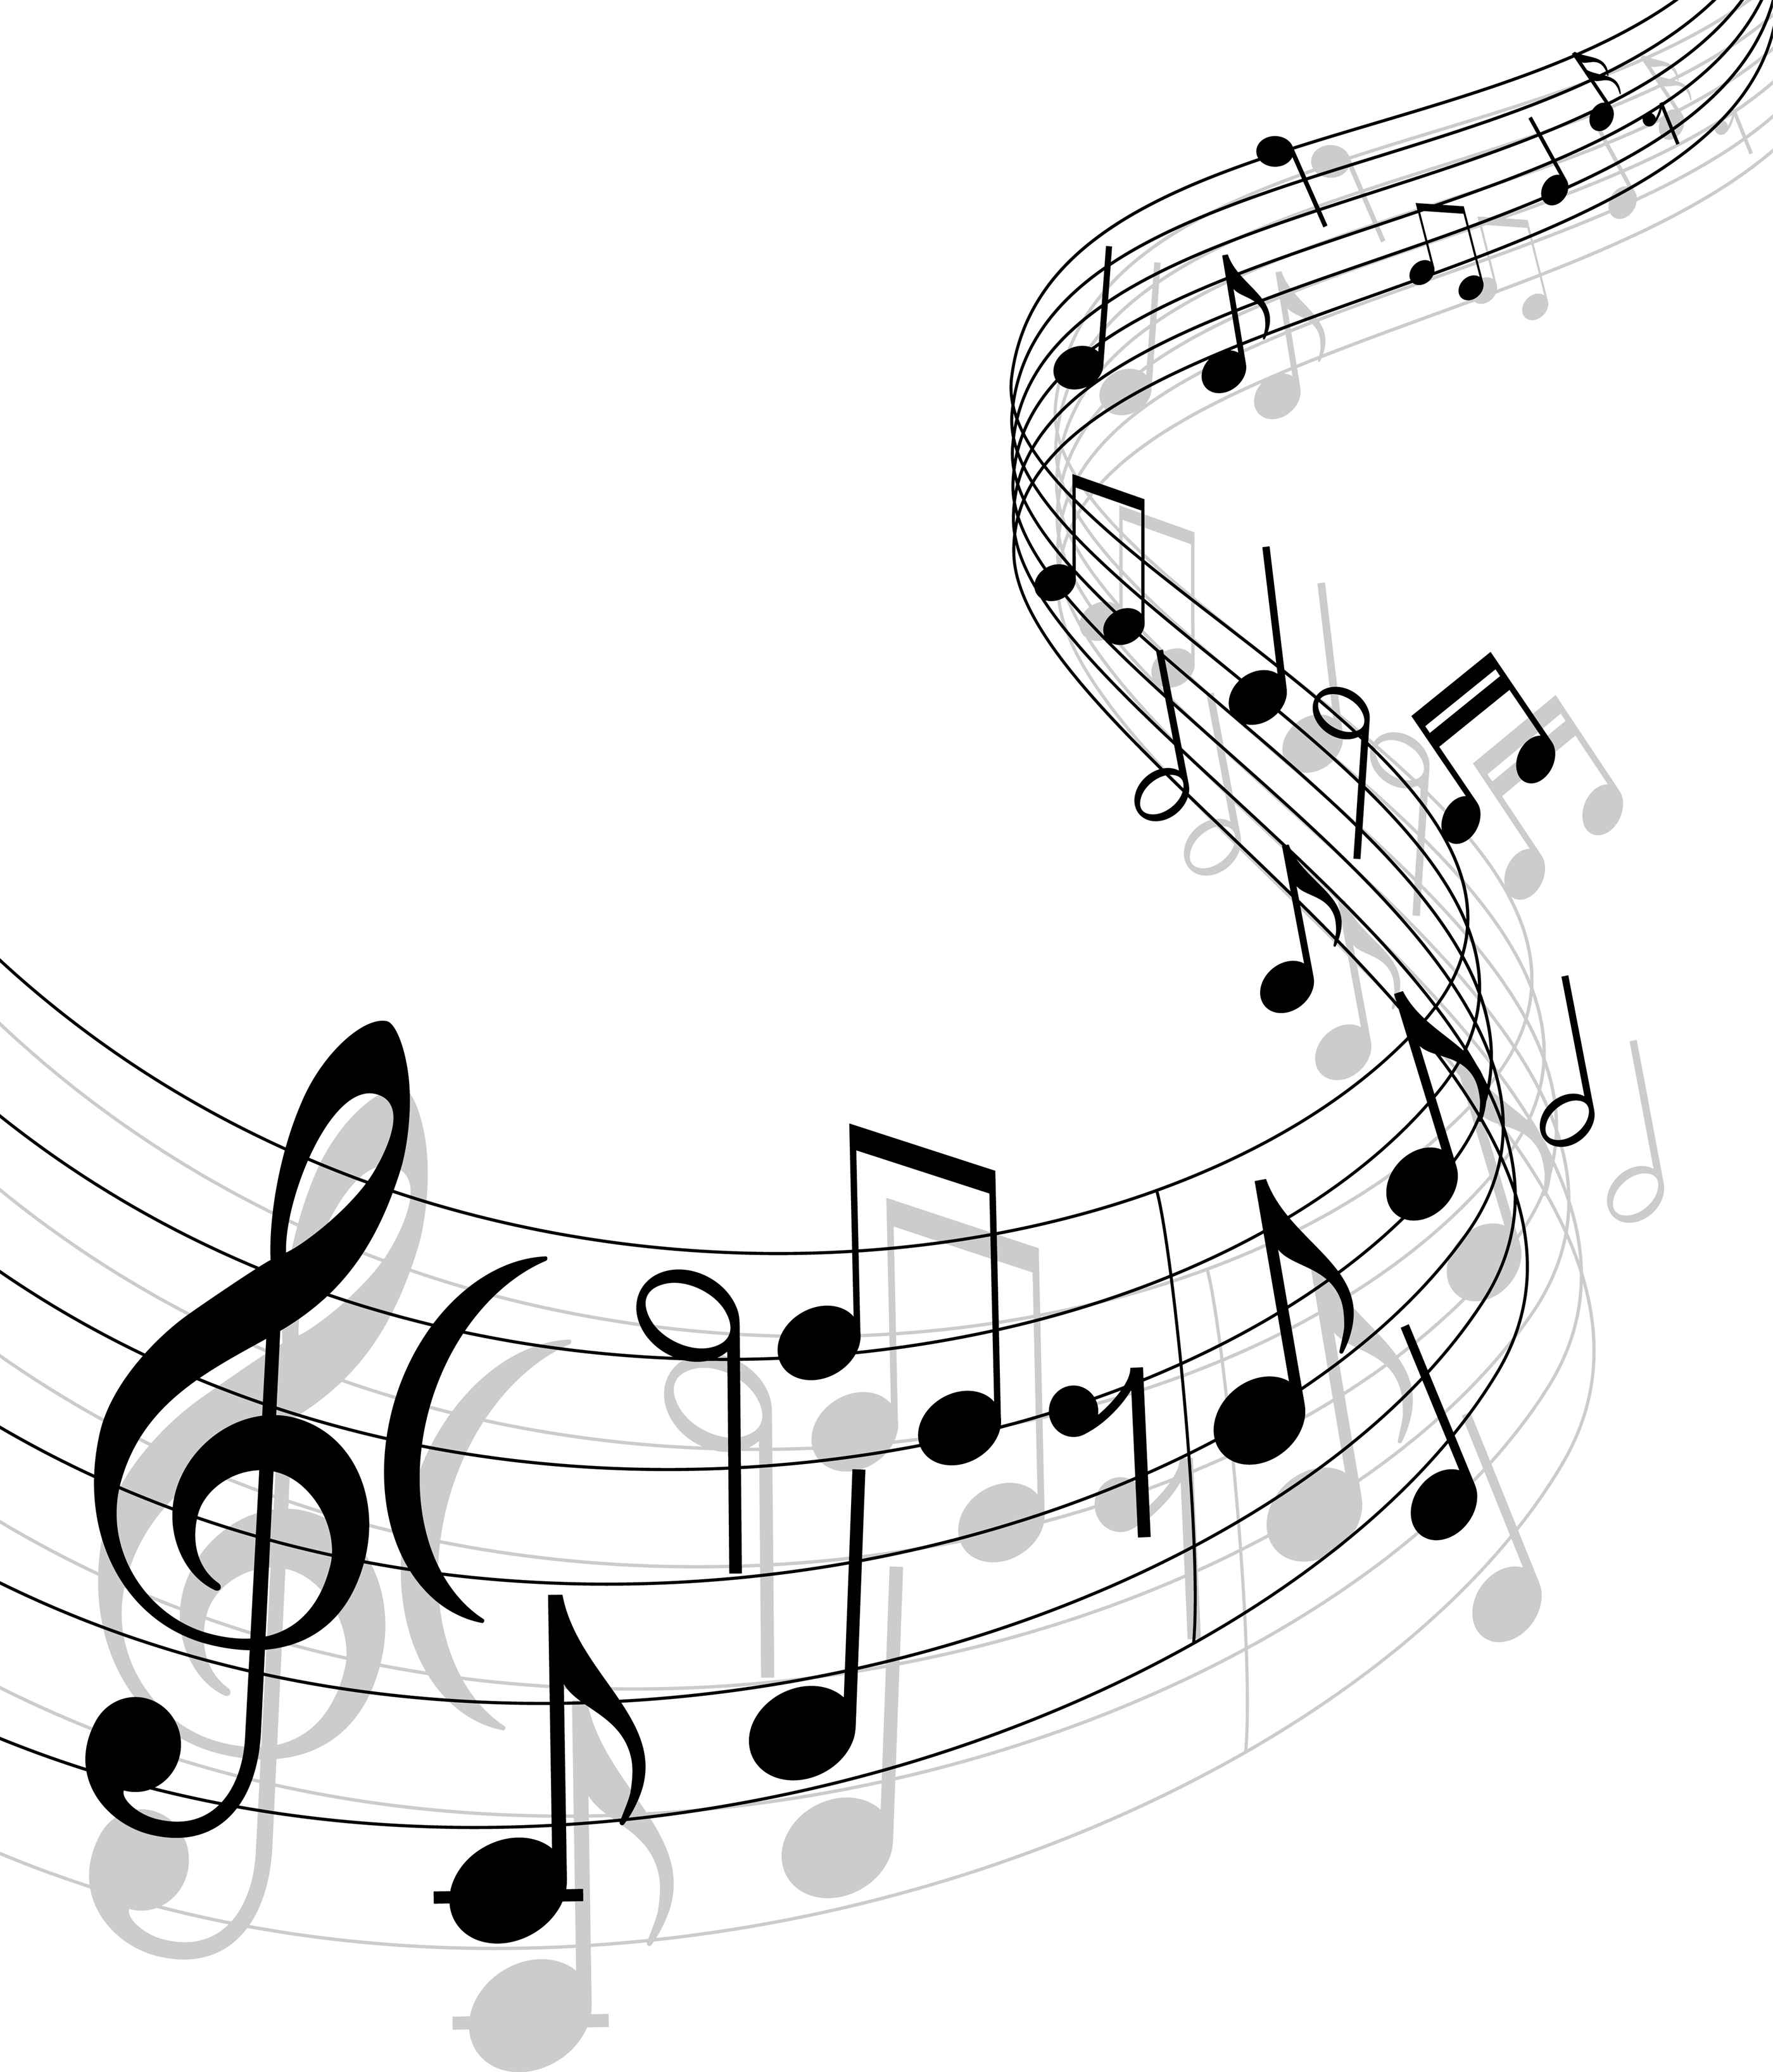 images?q=tbn:ANd9GcQh_l3eQ5xwiPy07kGEXjmjgmBKBRB7H2mRxCGhv1tFWg5c_mWT Best Of Music Notes Clipart Vector @koolgadgetz.com.info